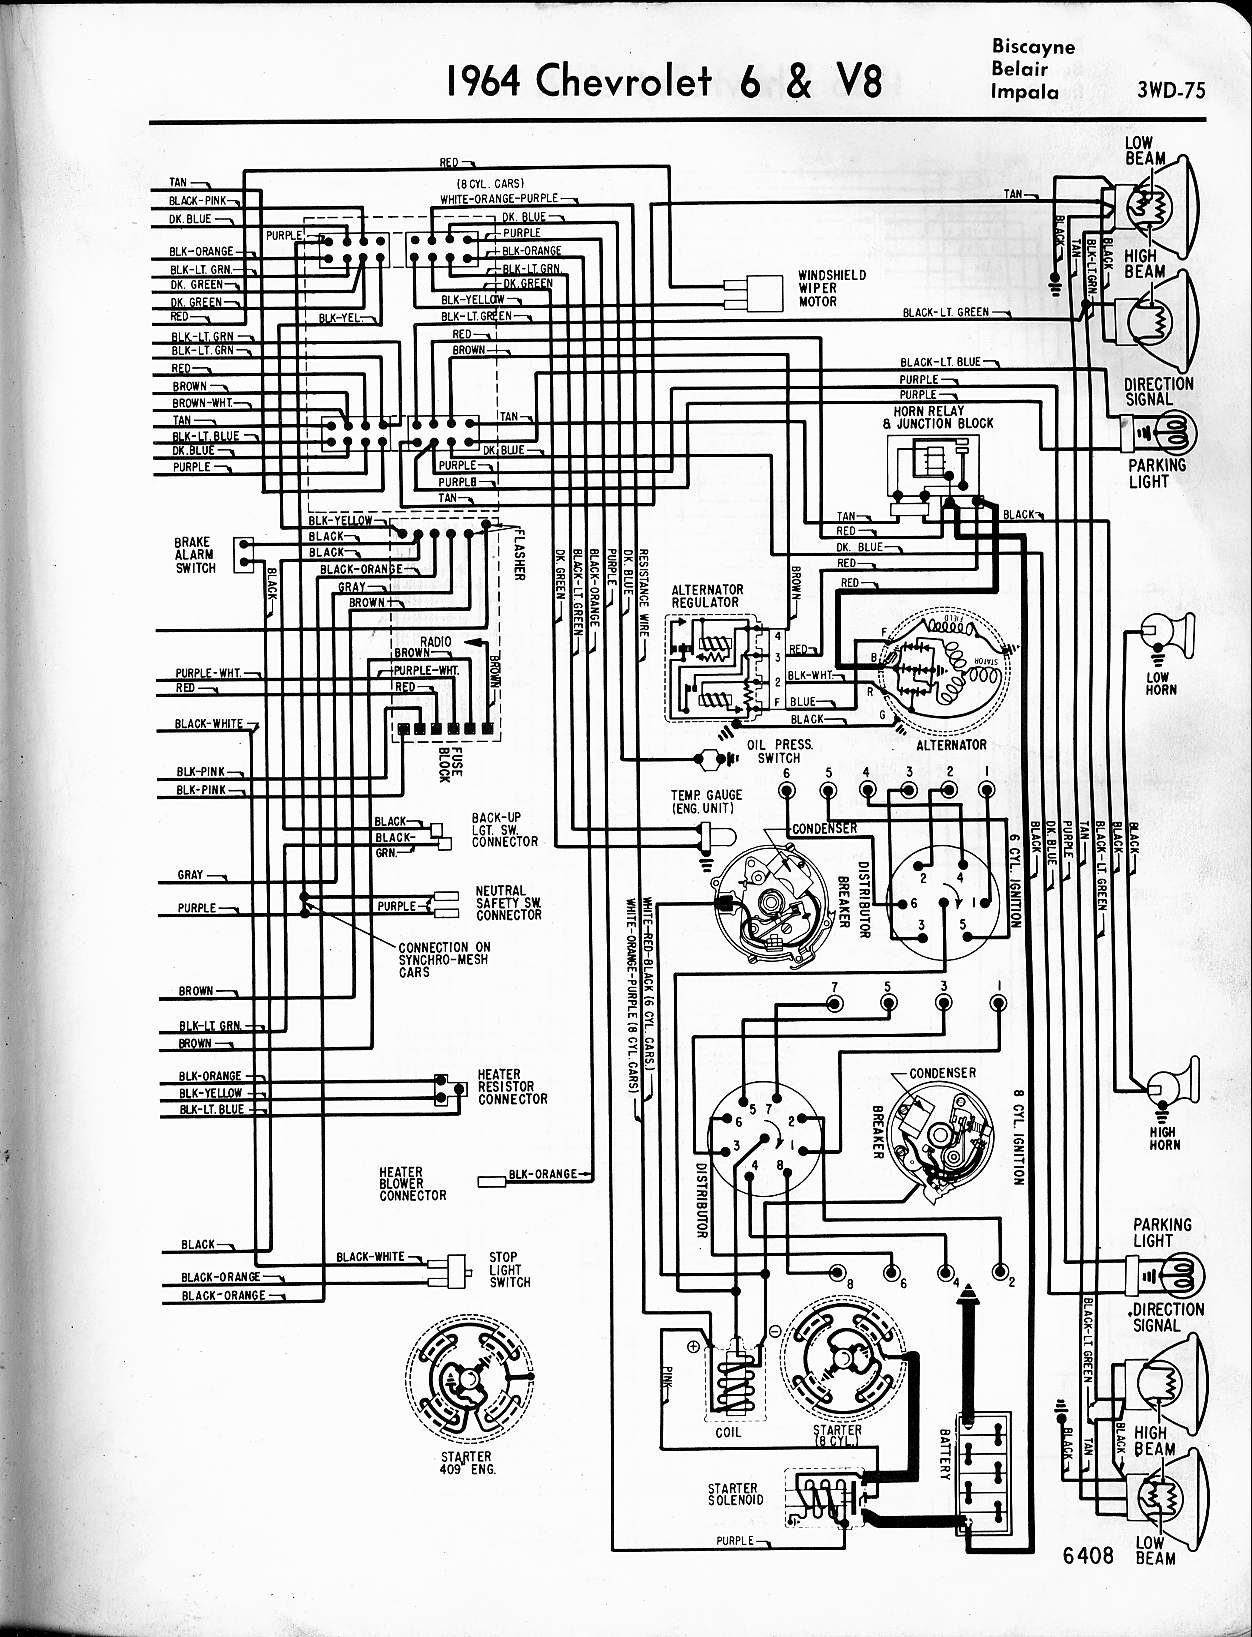 hight resolution of 1964 impala fuse box diagram wiring diagram progresif1964 chevy impala fuse box little wiring diagrams 1964